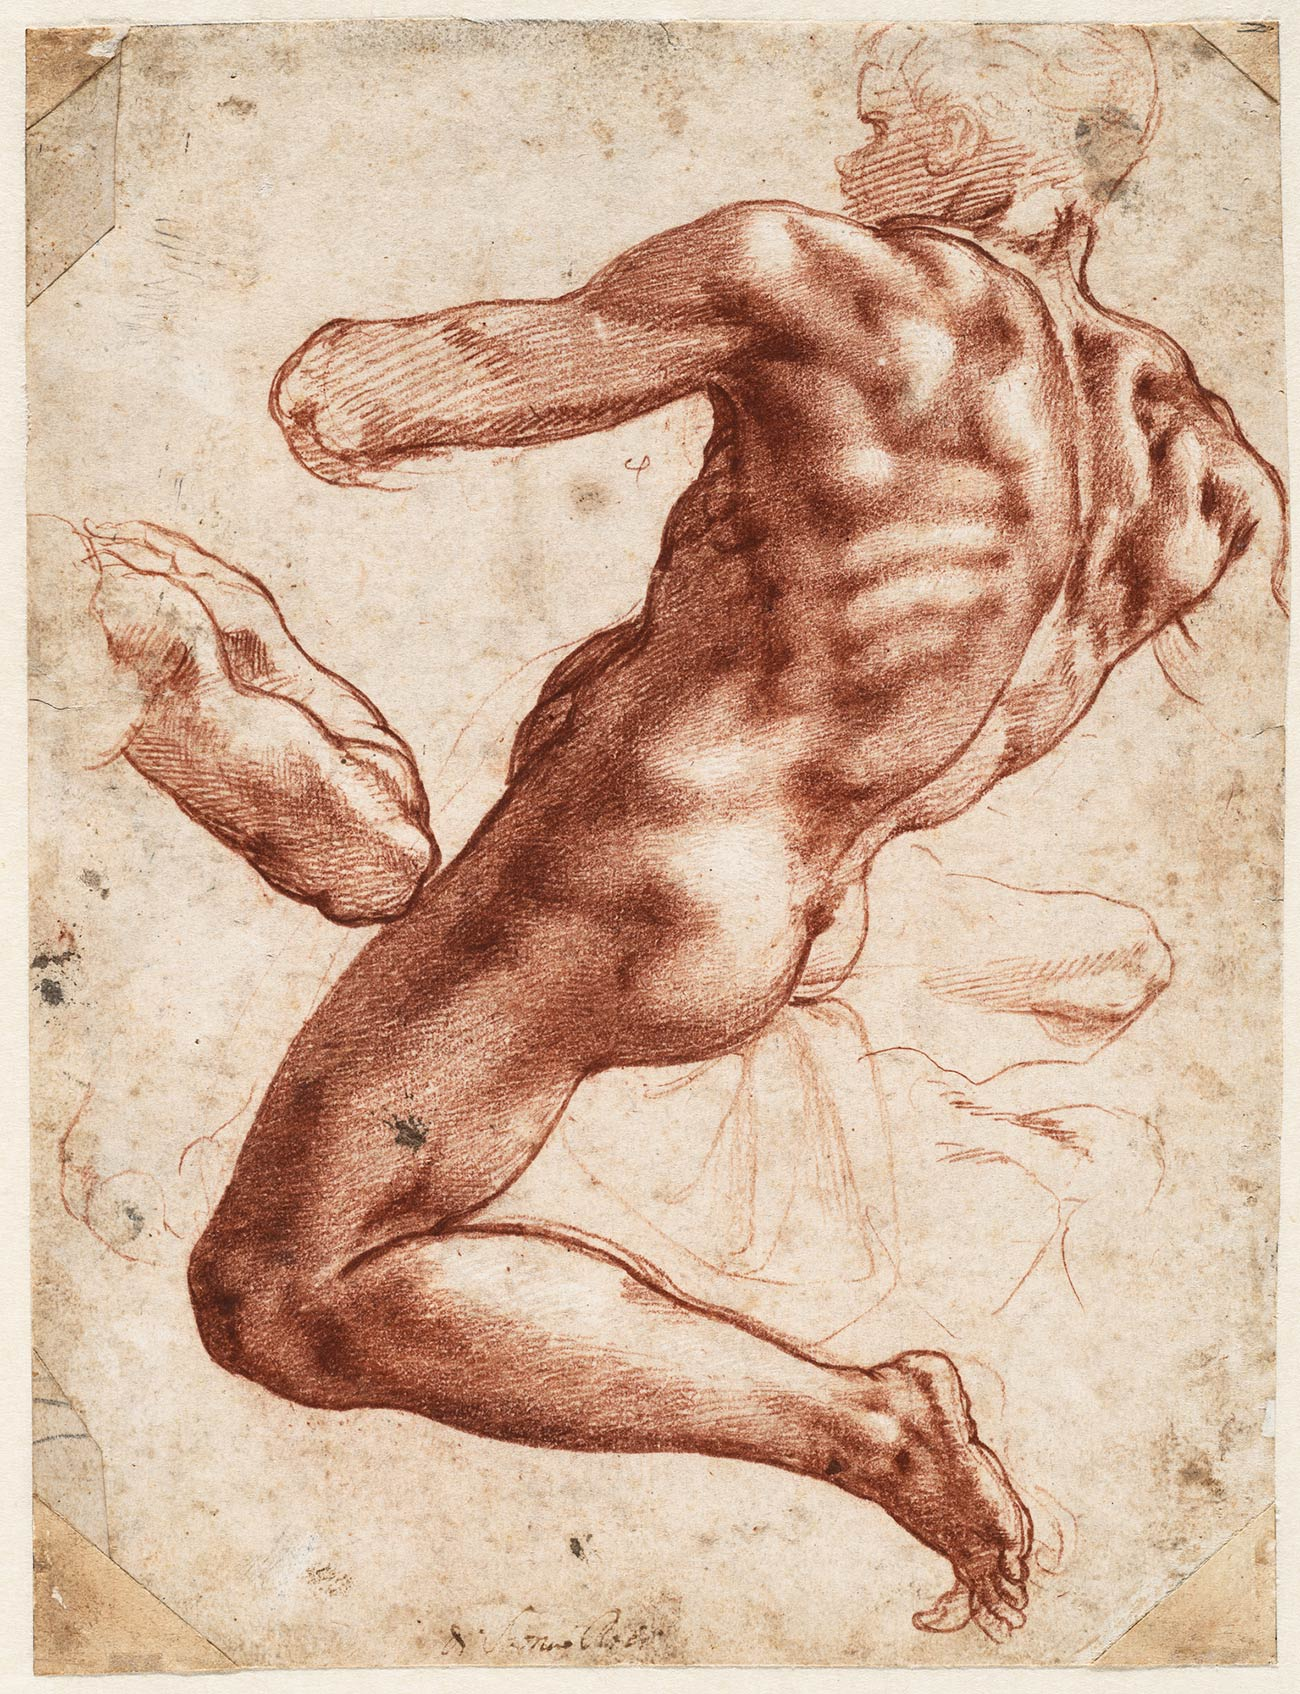 Exhibition Examines Michelangelo's Working Process through Rare Original Drawings